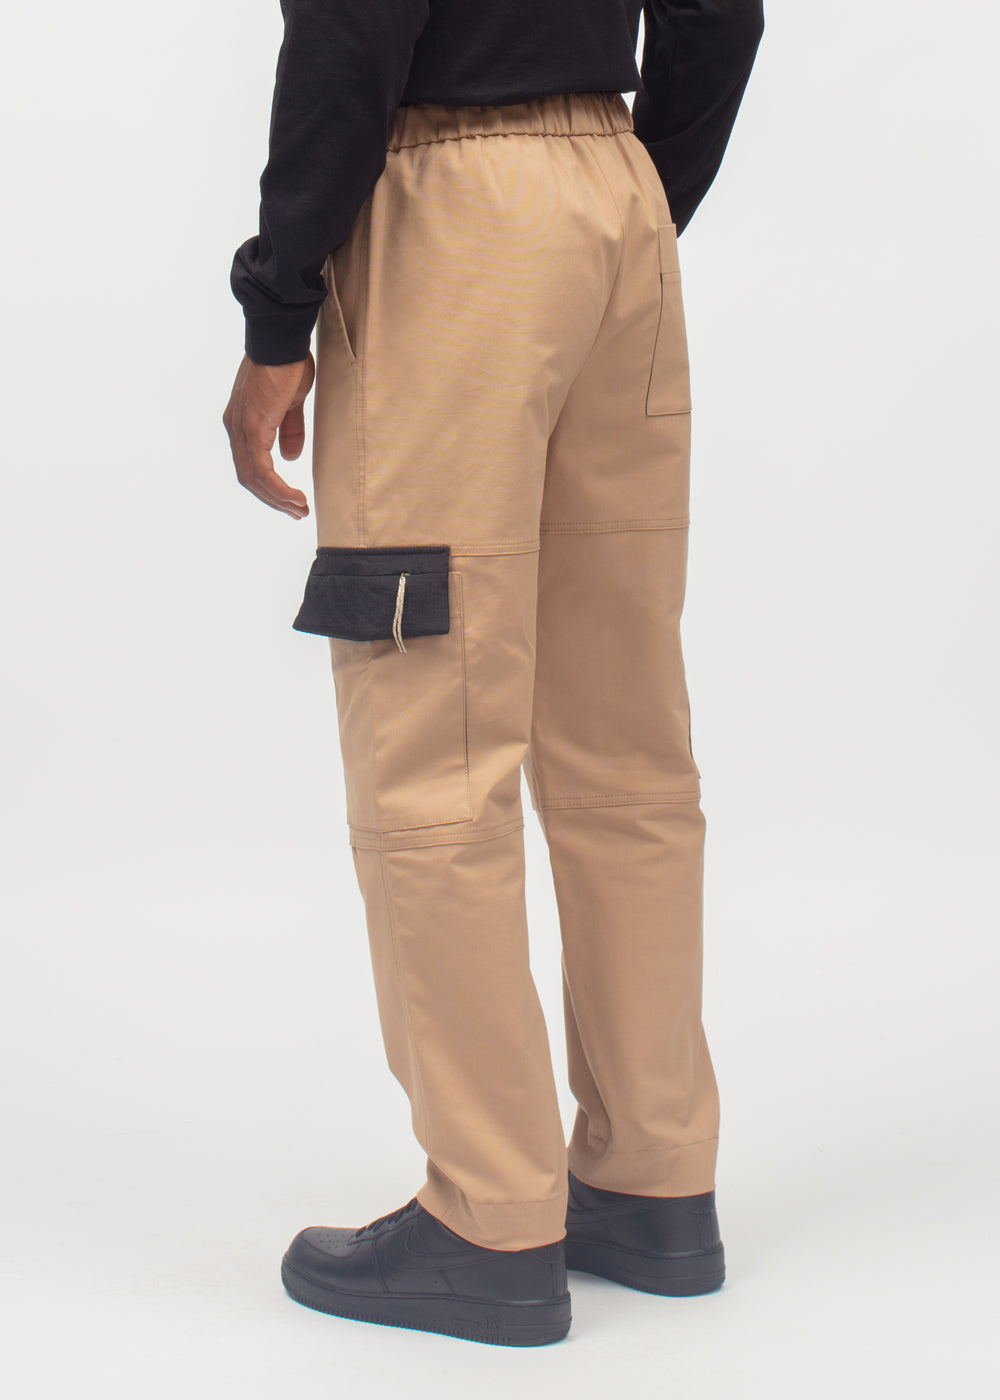 tapered-cargo-pant-f965pa2161ra-12-camel-2